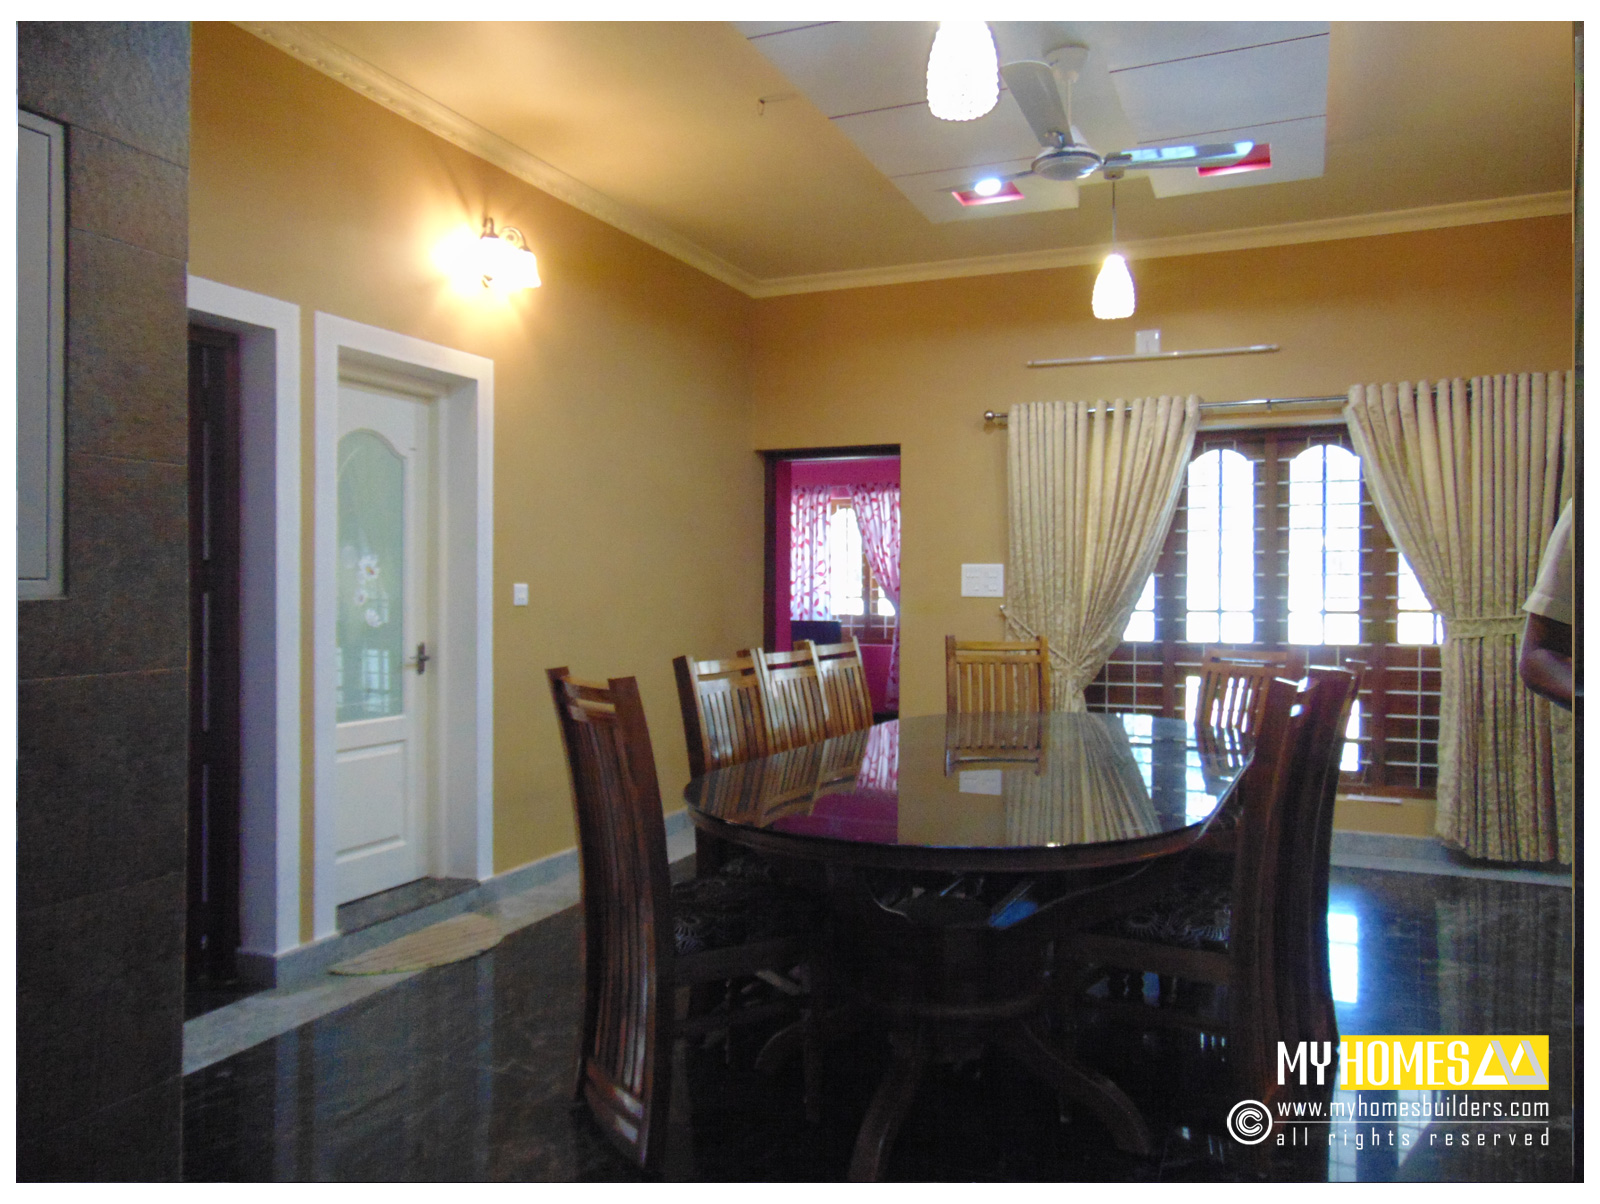 Latest ideas for dining room design kerala from my homes for Home designers in my area